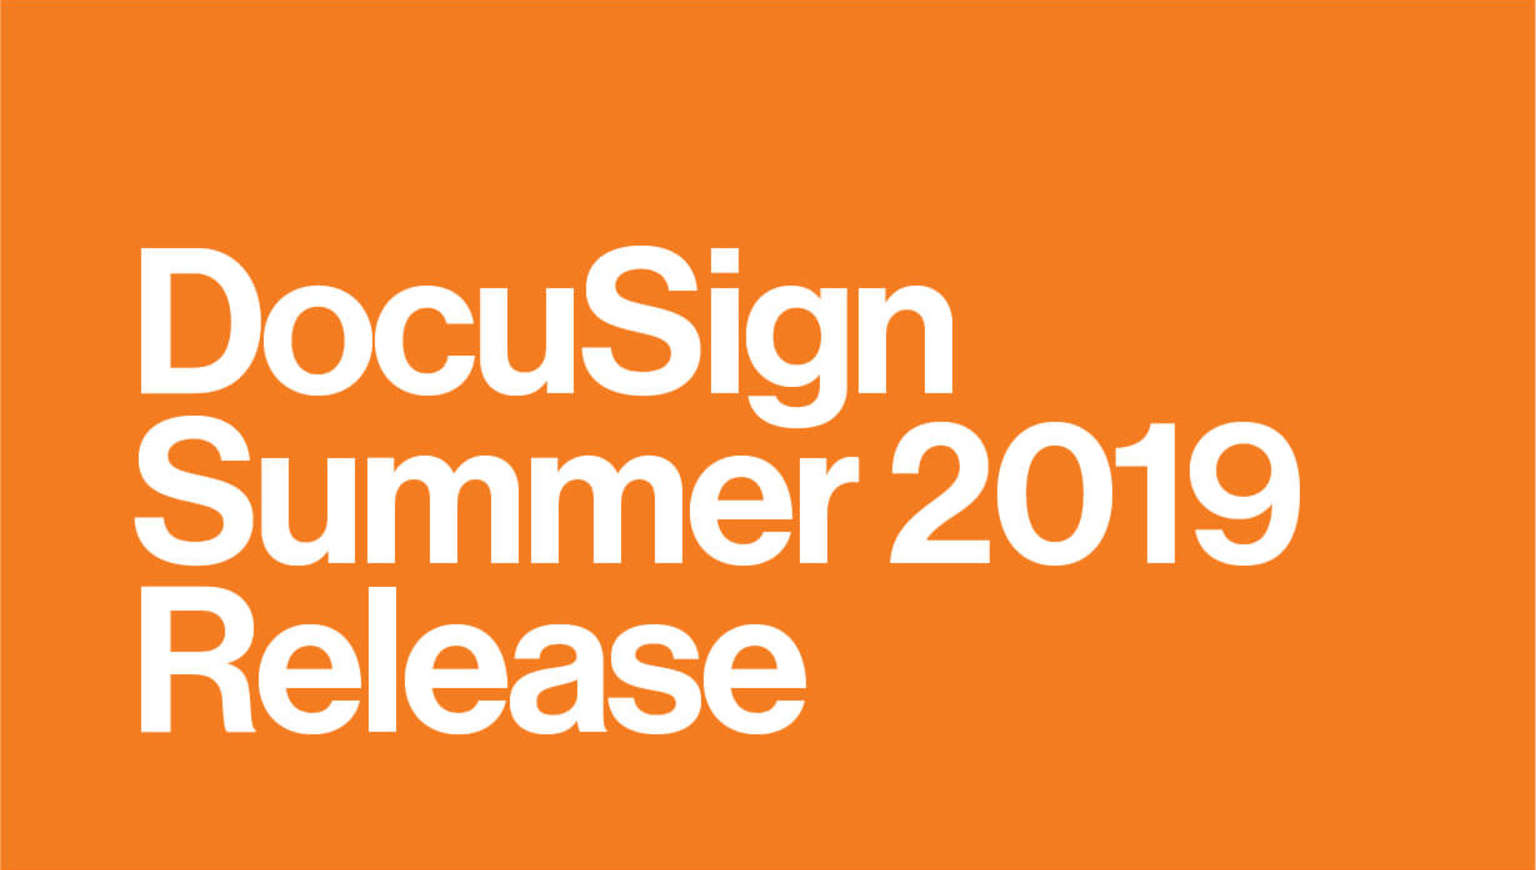 DocuSign Summer Release 2019